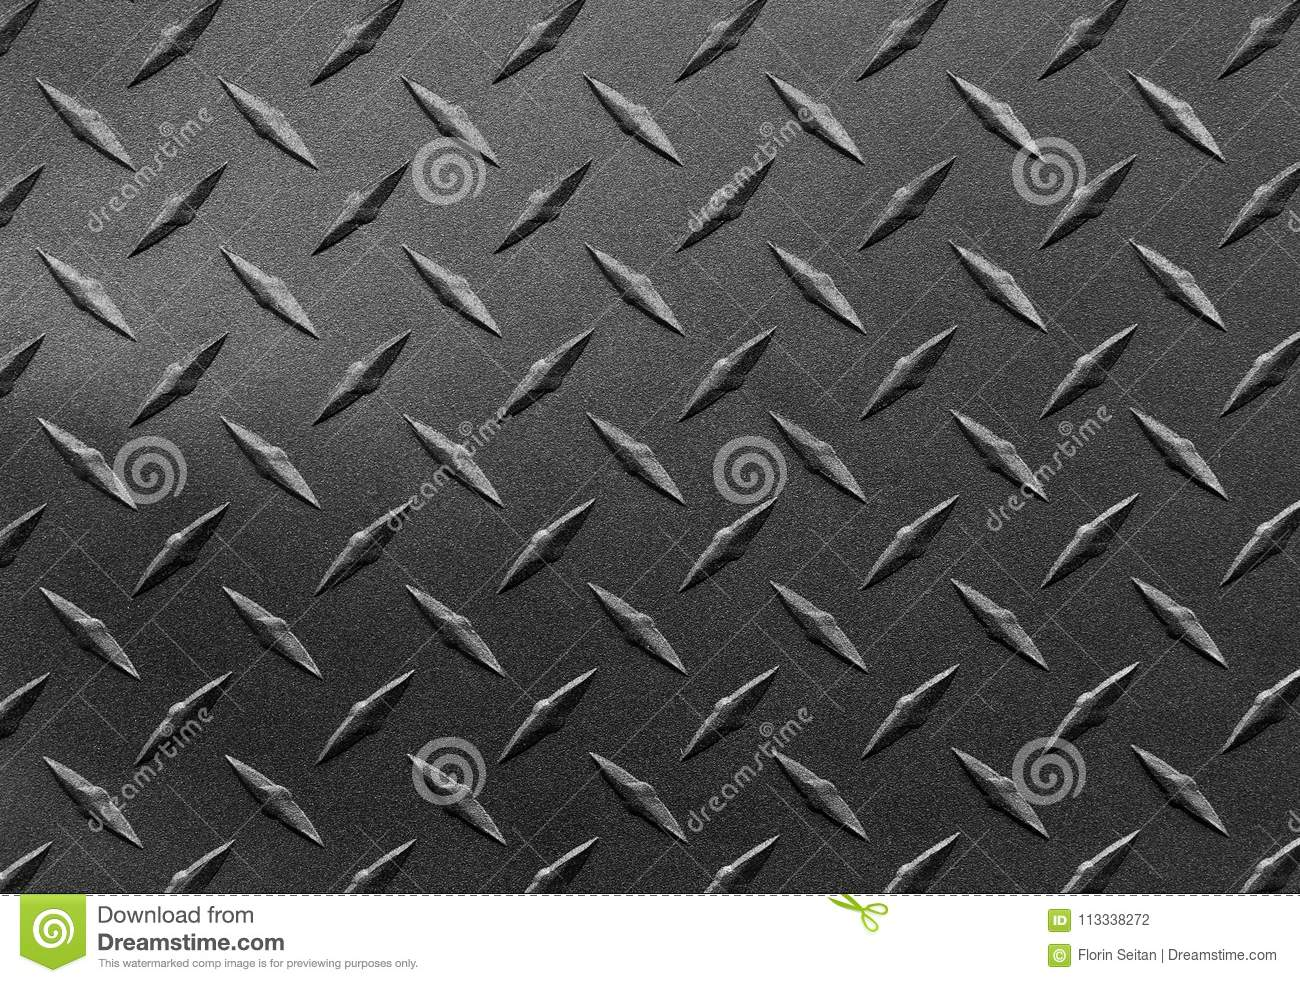 Close up of grainy textured steel sheet with diamond plate pattern, metallic background